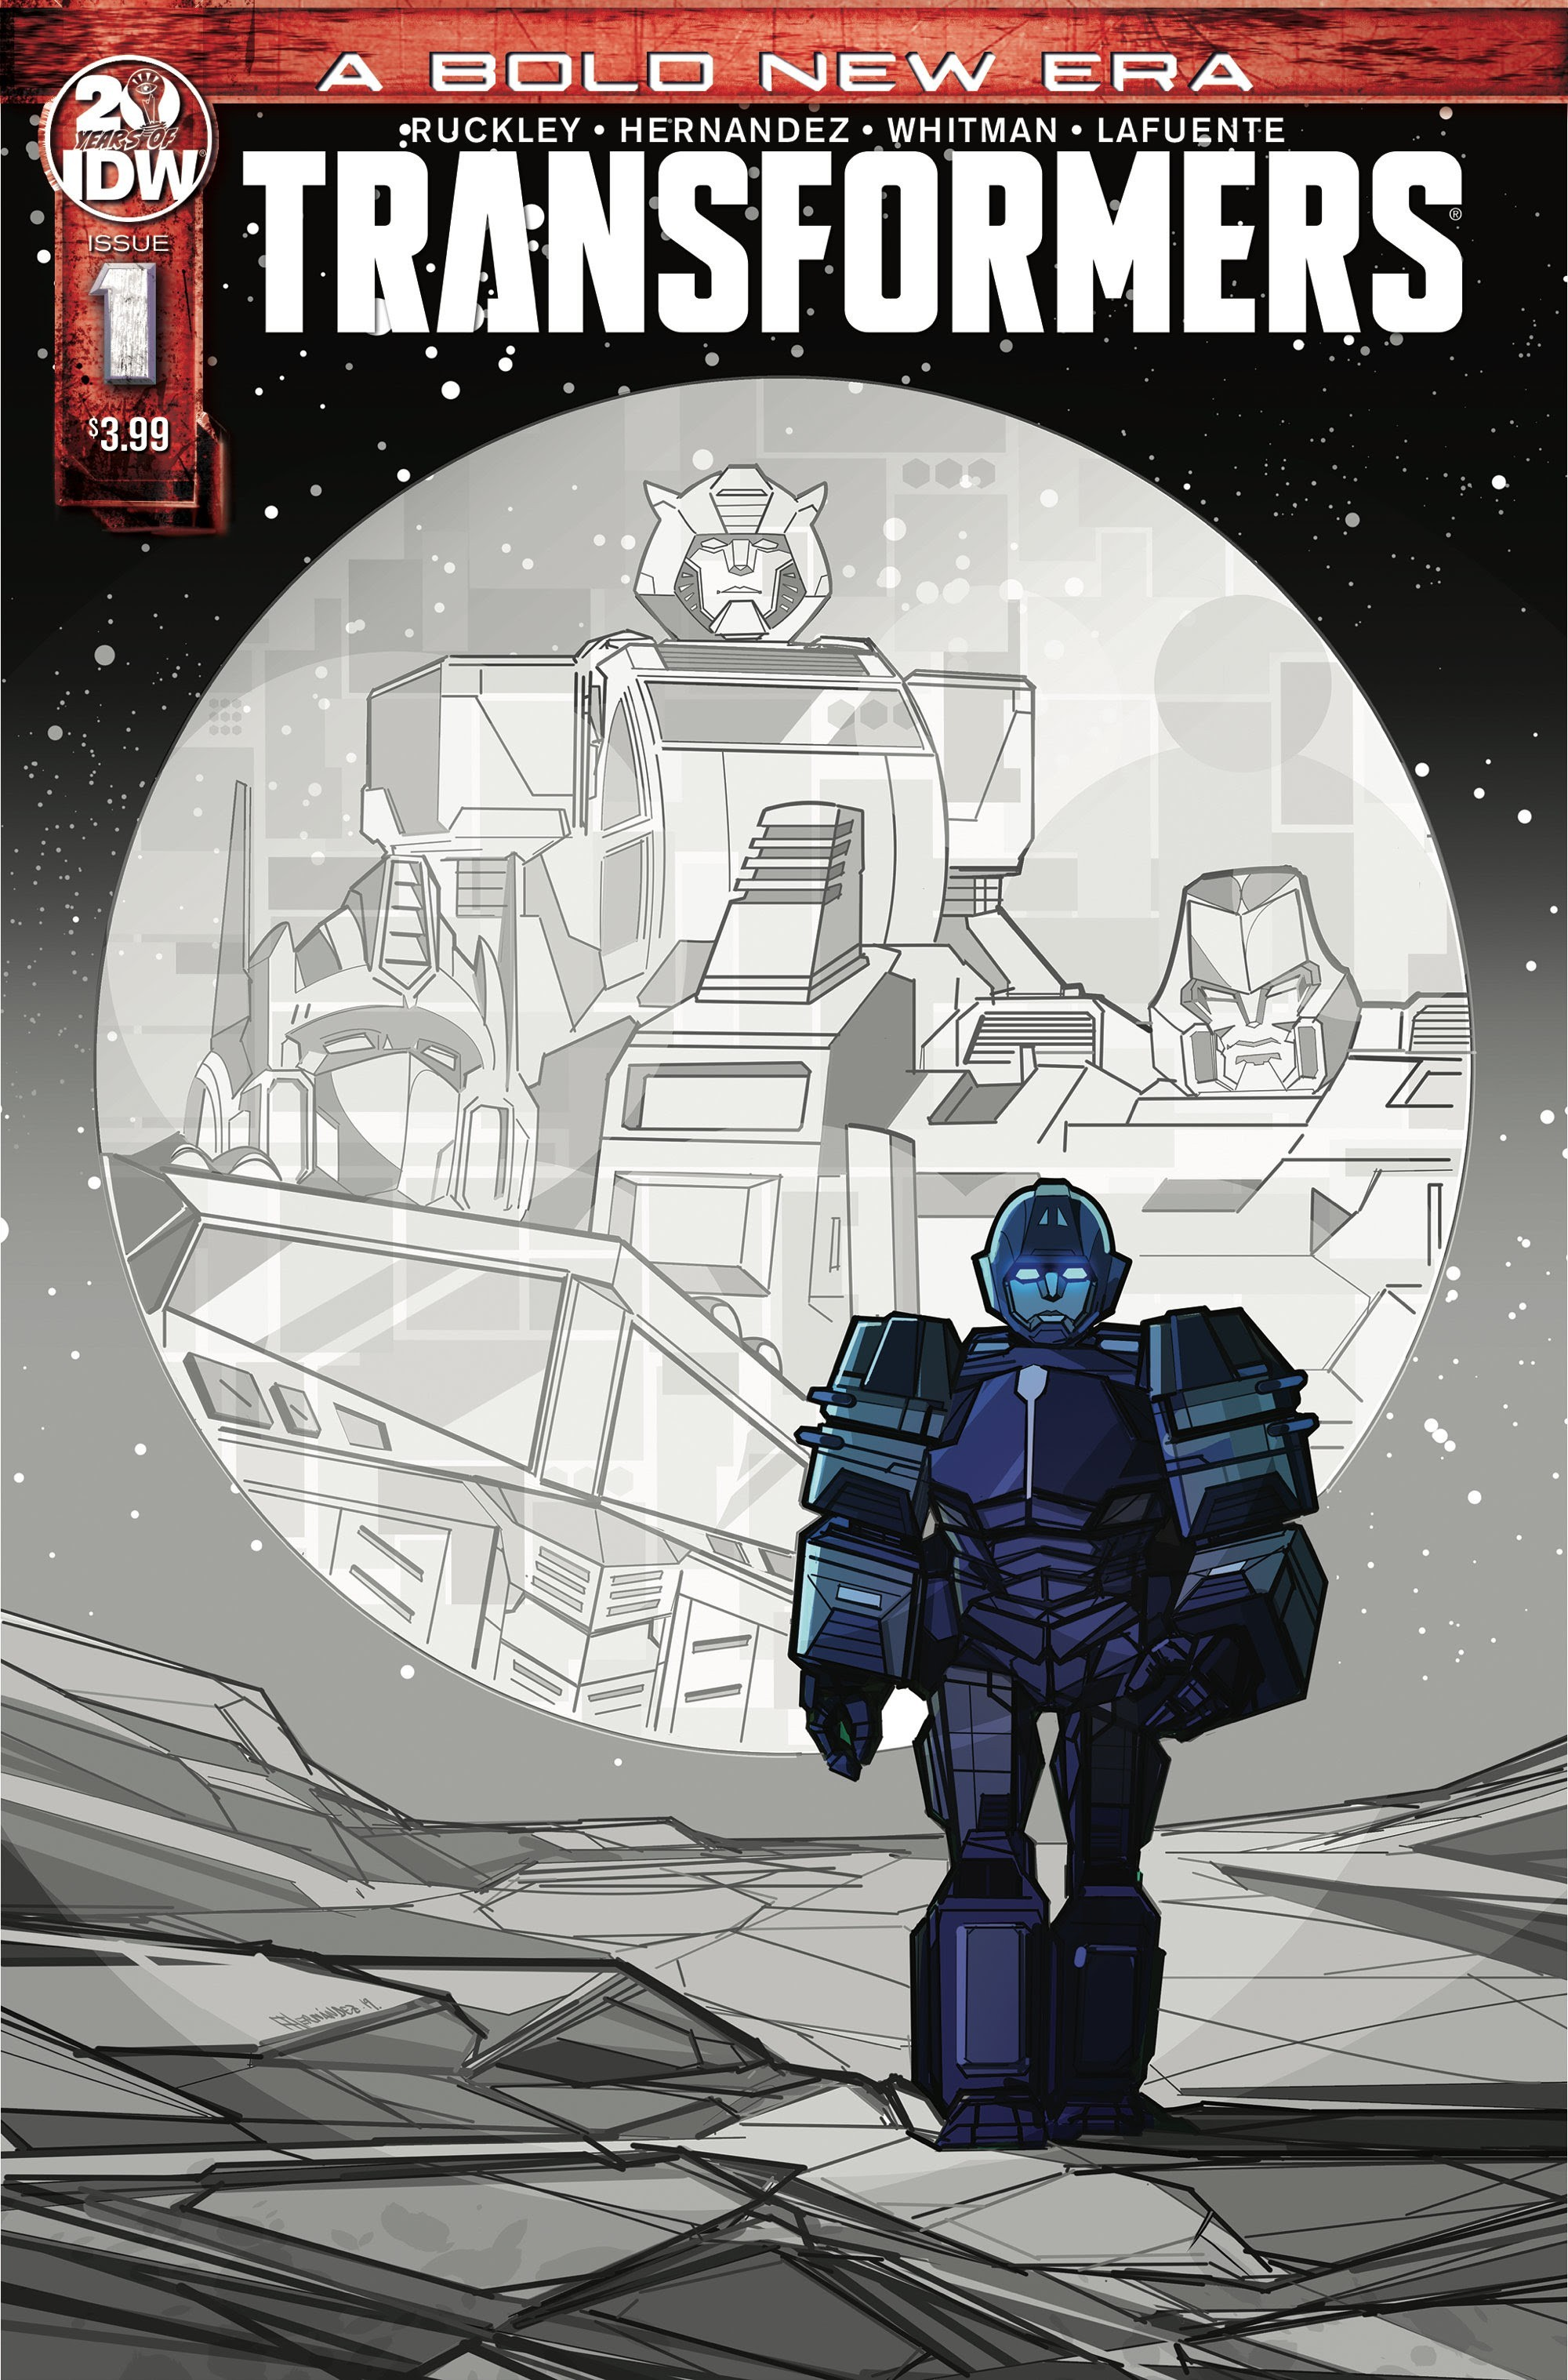 Transformers #1 Sells Out and Gets a Second Printing